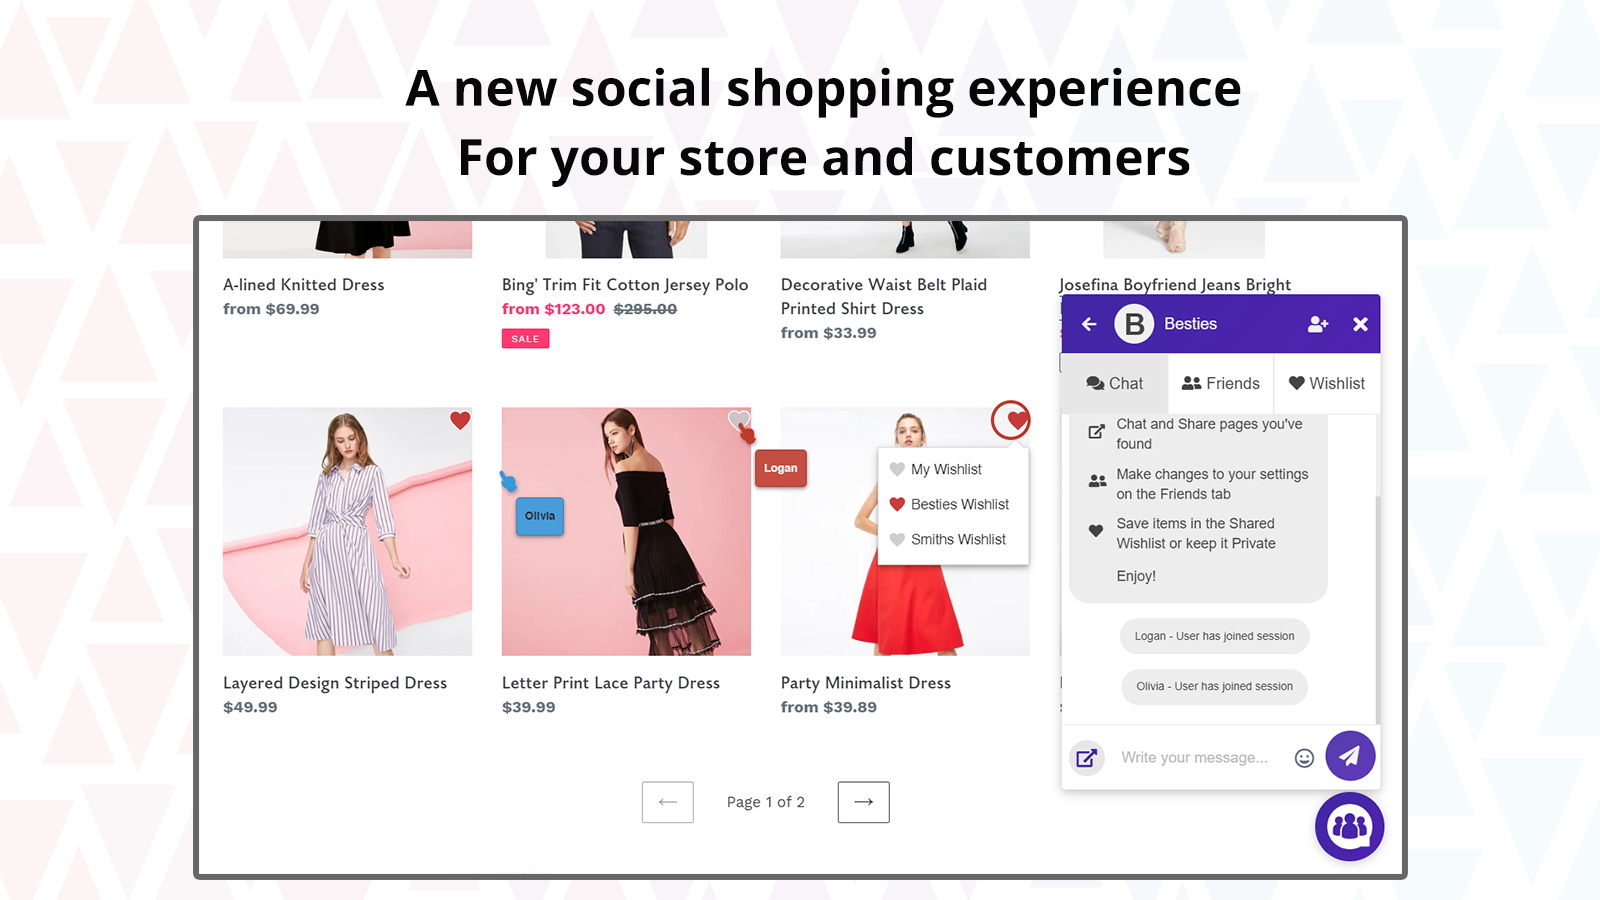 A new social shopping experience